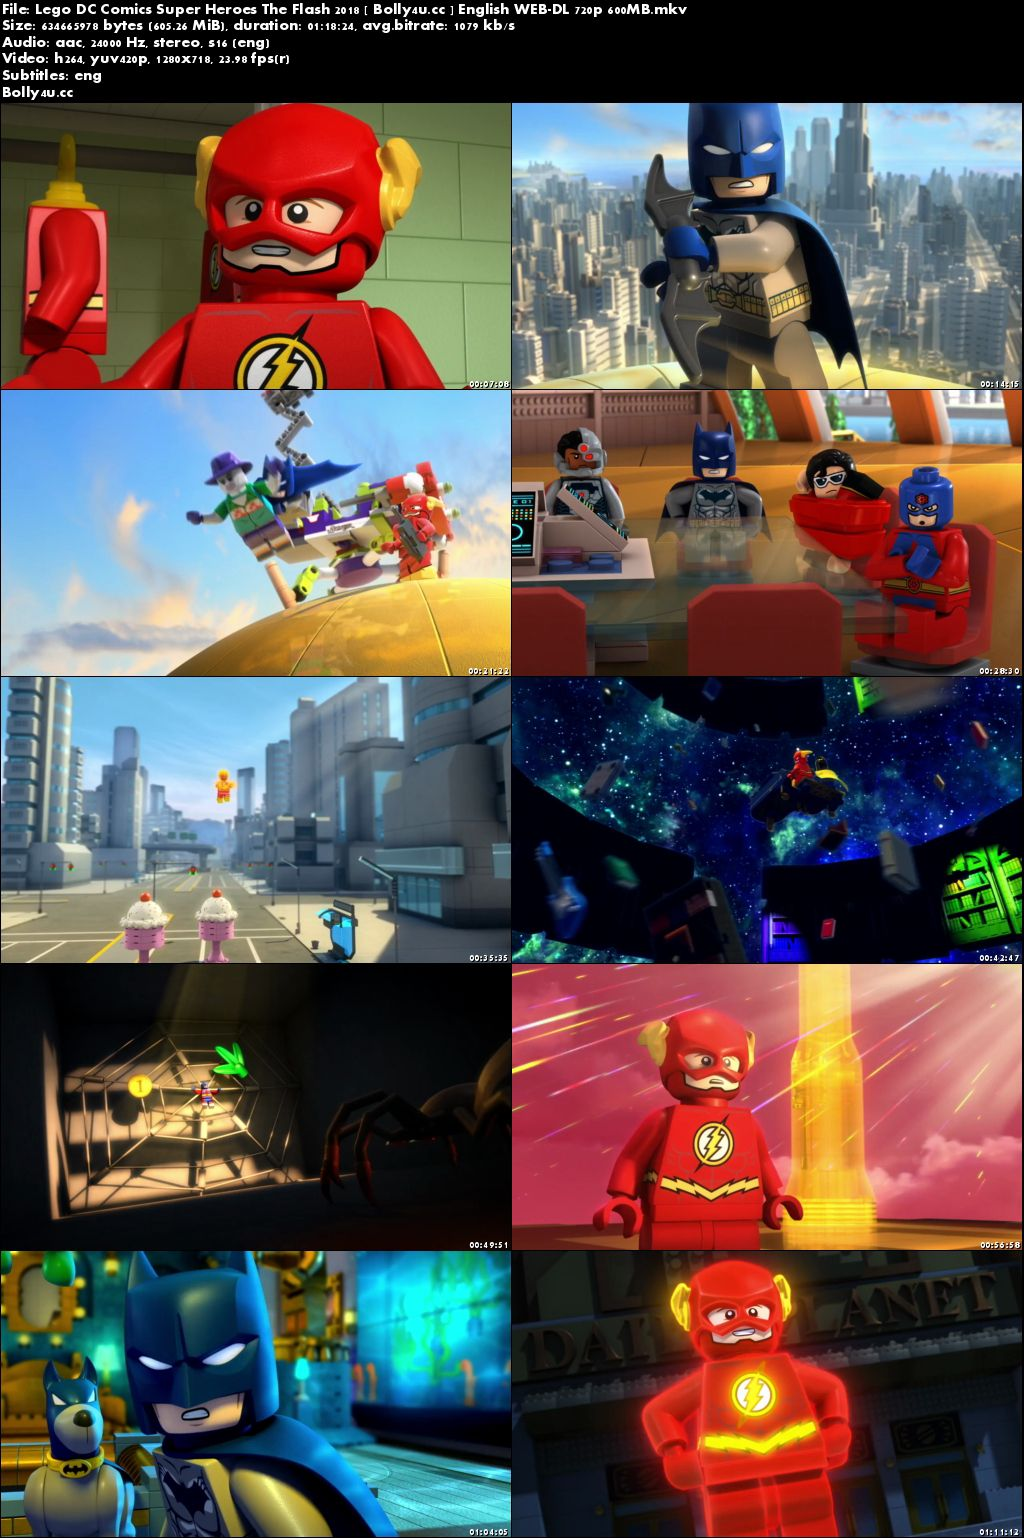 Lego DC Comics Super Heroes The Flash 2018 WEB-DL 600MB English 720p Download